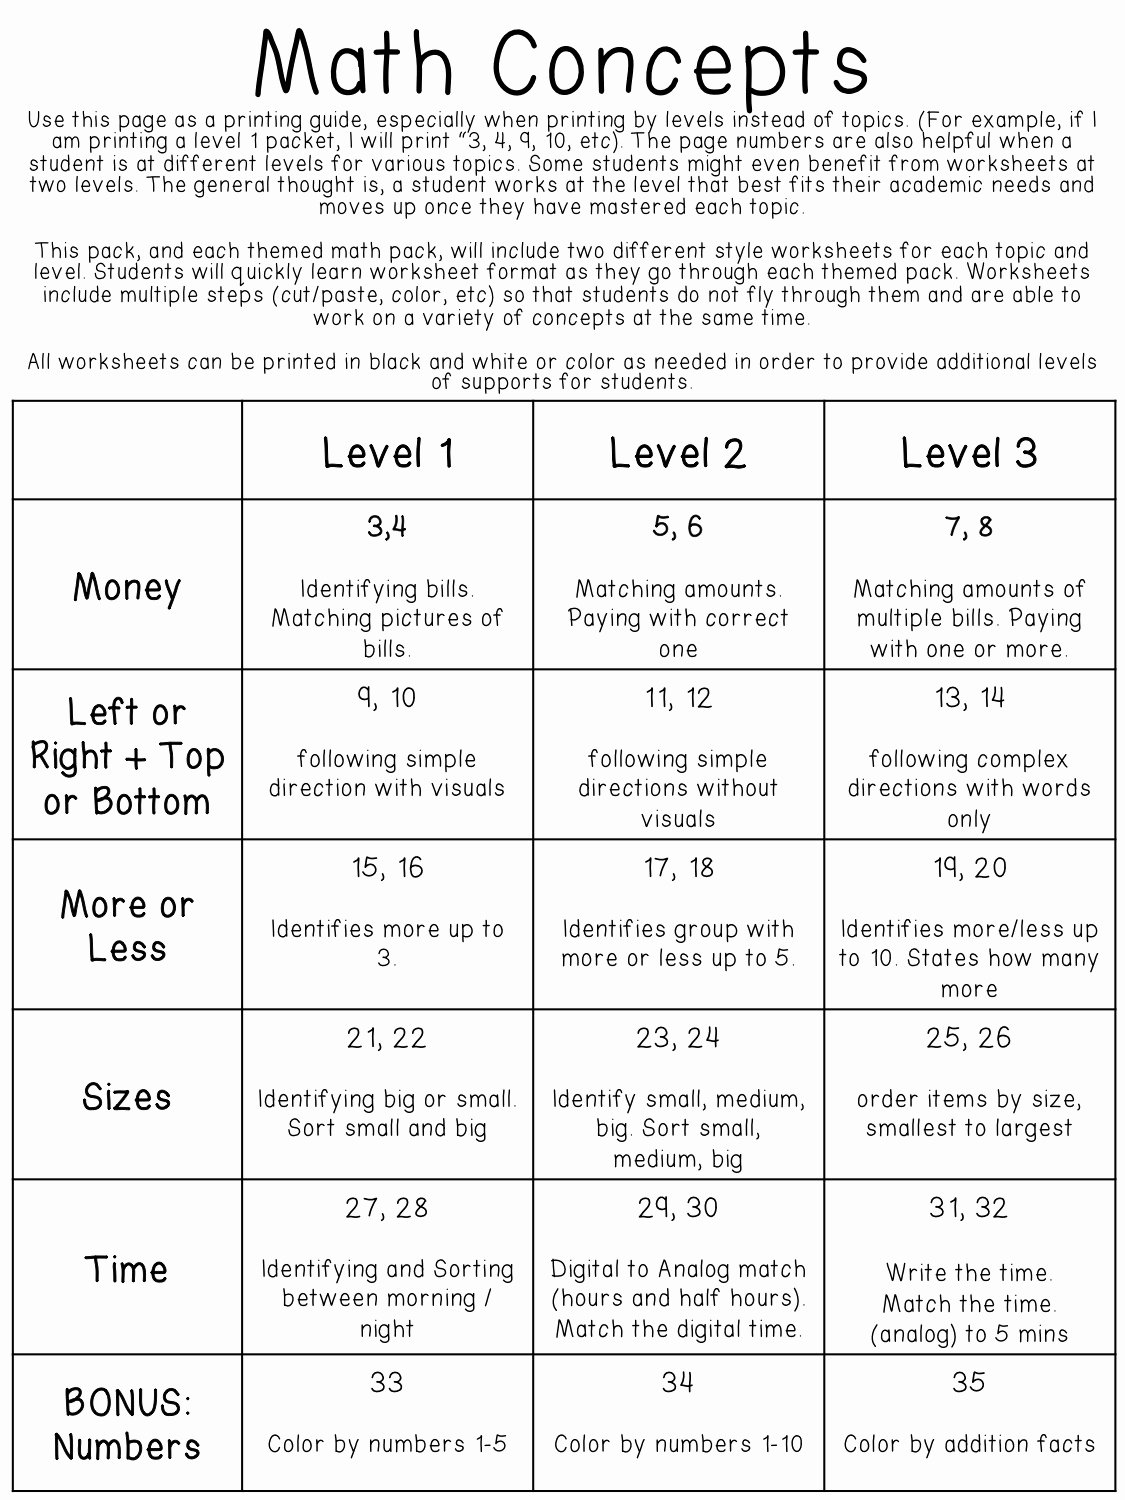 Life Skills Worksheets for Adults Best Of Math Life Skill Worksheets Thanksgiving themed Breezy